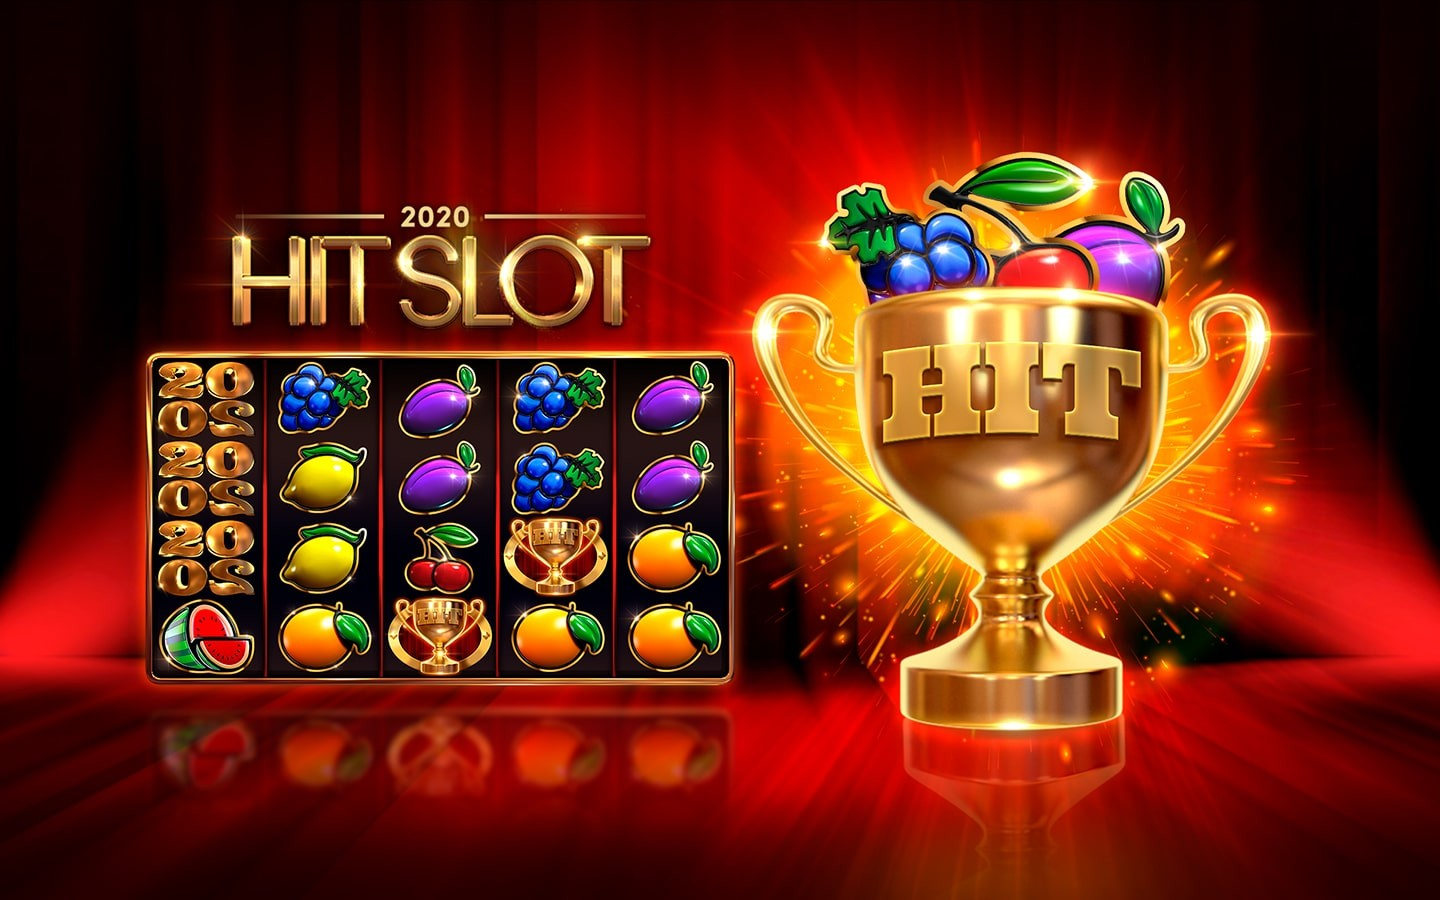 TOP FRUIT SLOTS | Play 2020 HIT SLOT now!